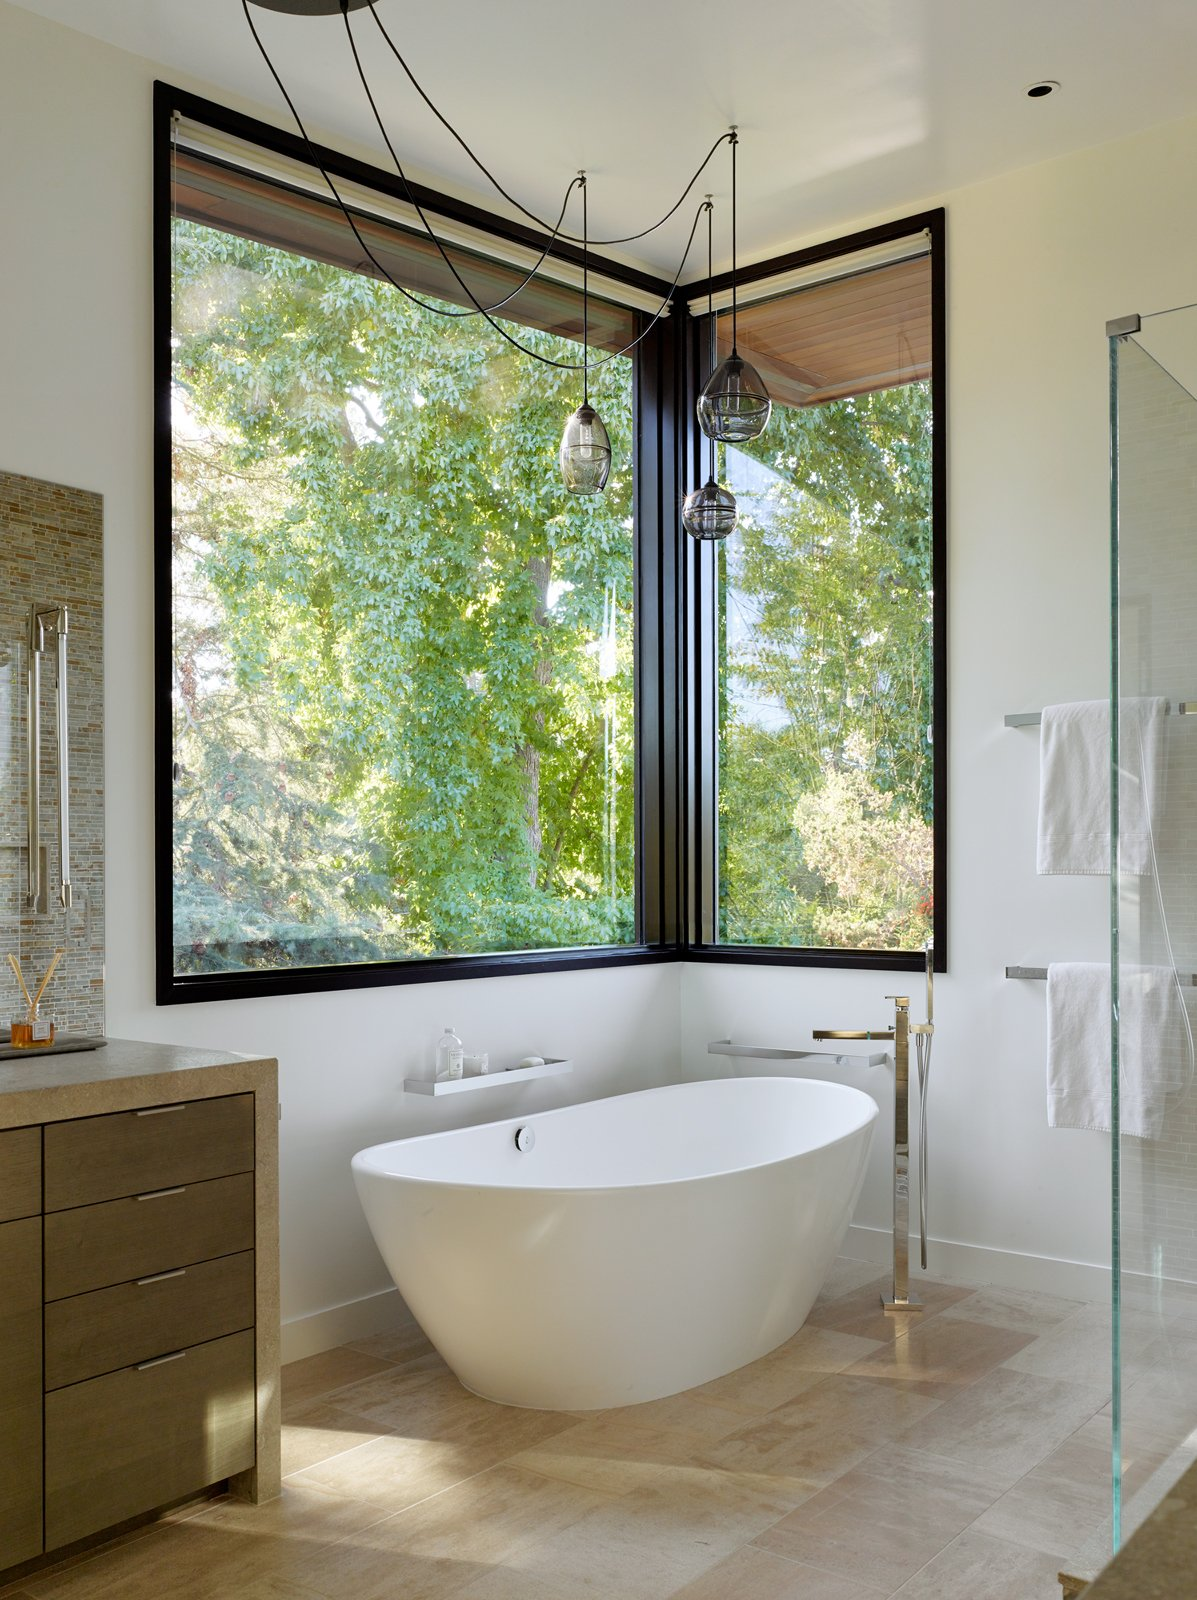 Bath, Stone, Ceiling, Freestanding, Enclosed, Drop In, Soaking, and Ceramic Tile A standalone soaking tub offers respite at the end of a long day.  Bath Freestanding Stone Photos from A Silicon Valley Retreat Sports a Butterfly Roof and Two Indoor/Outdoor Wings